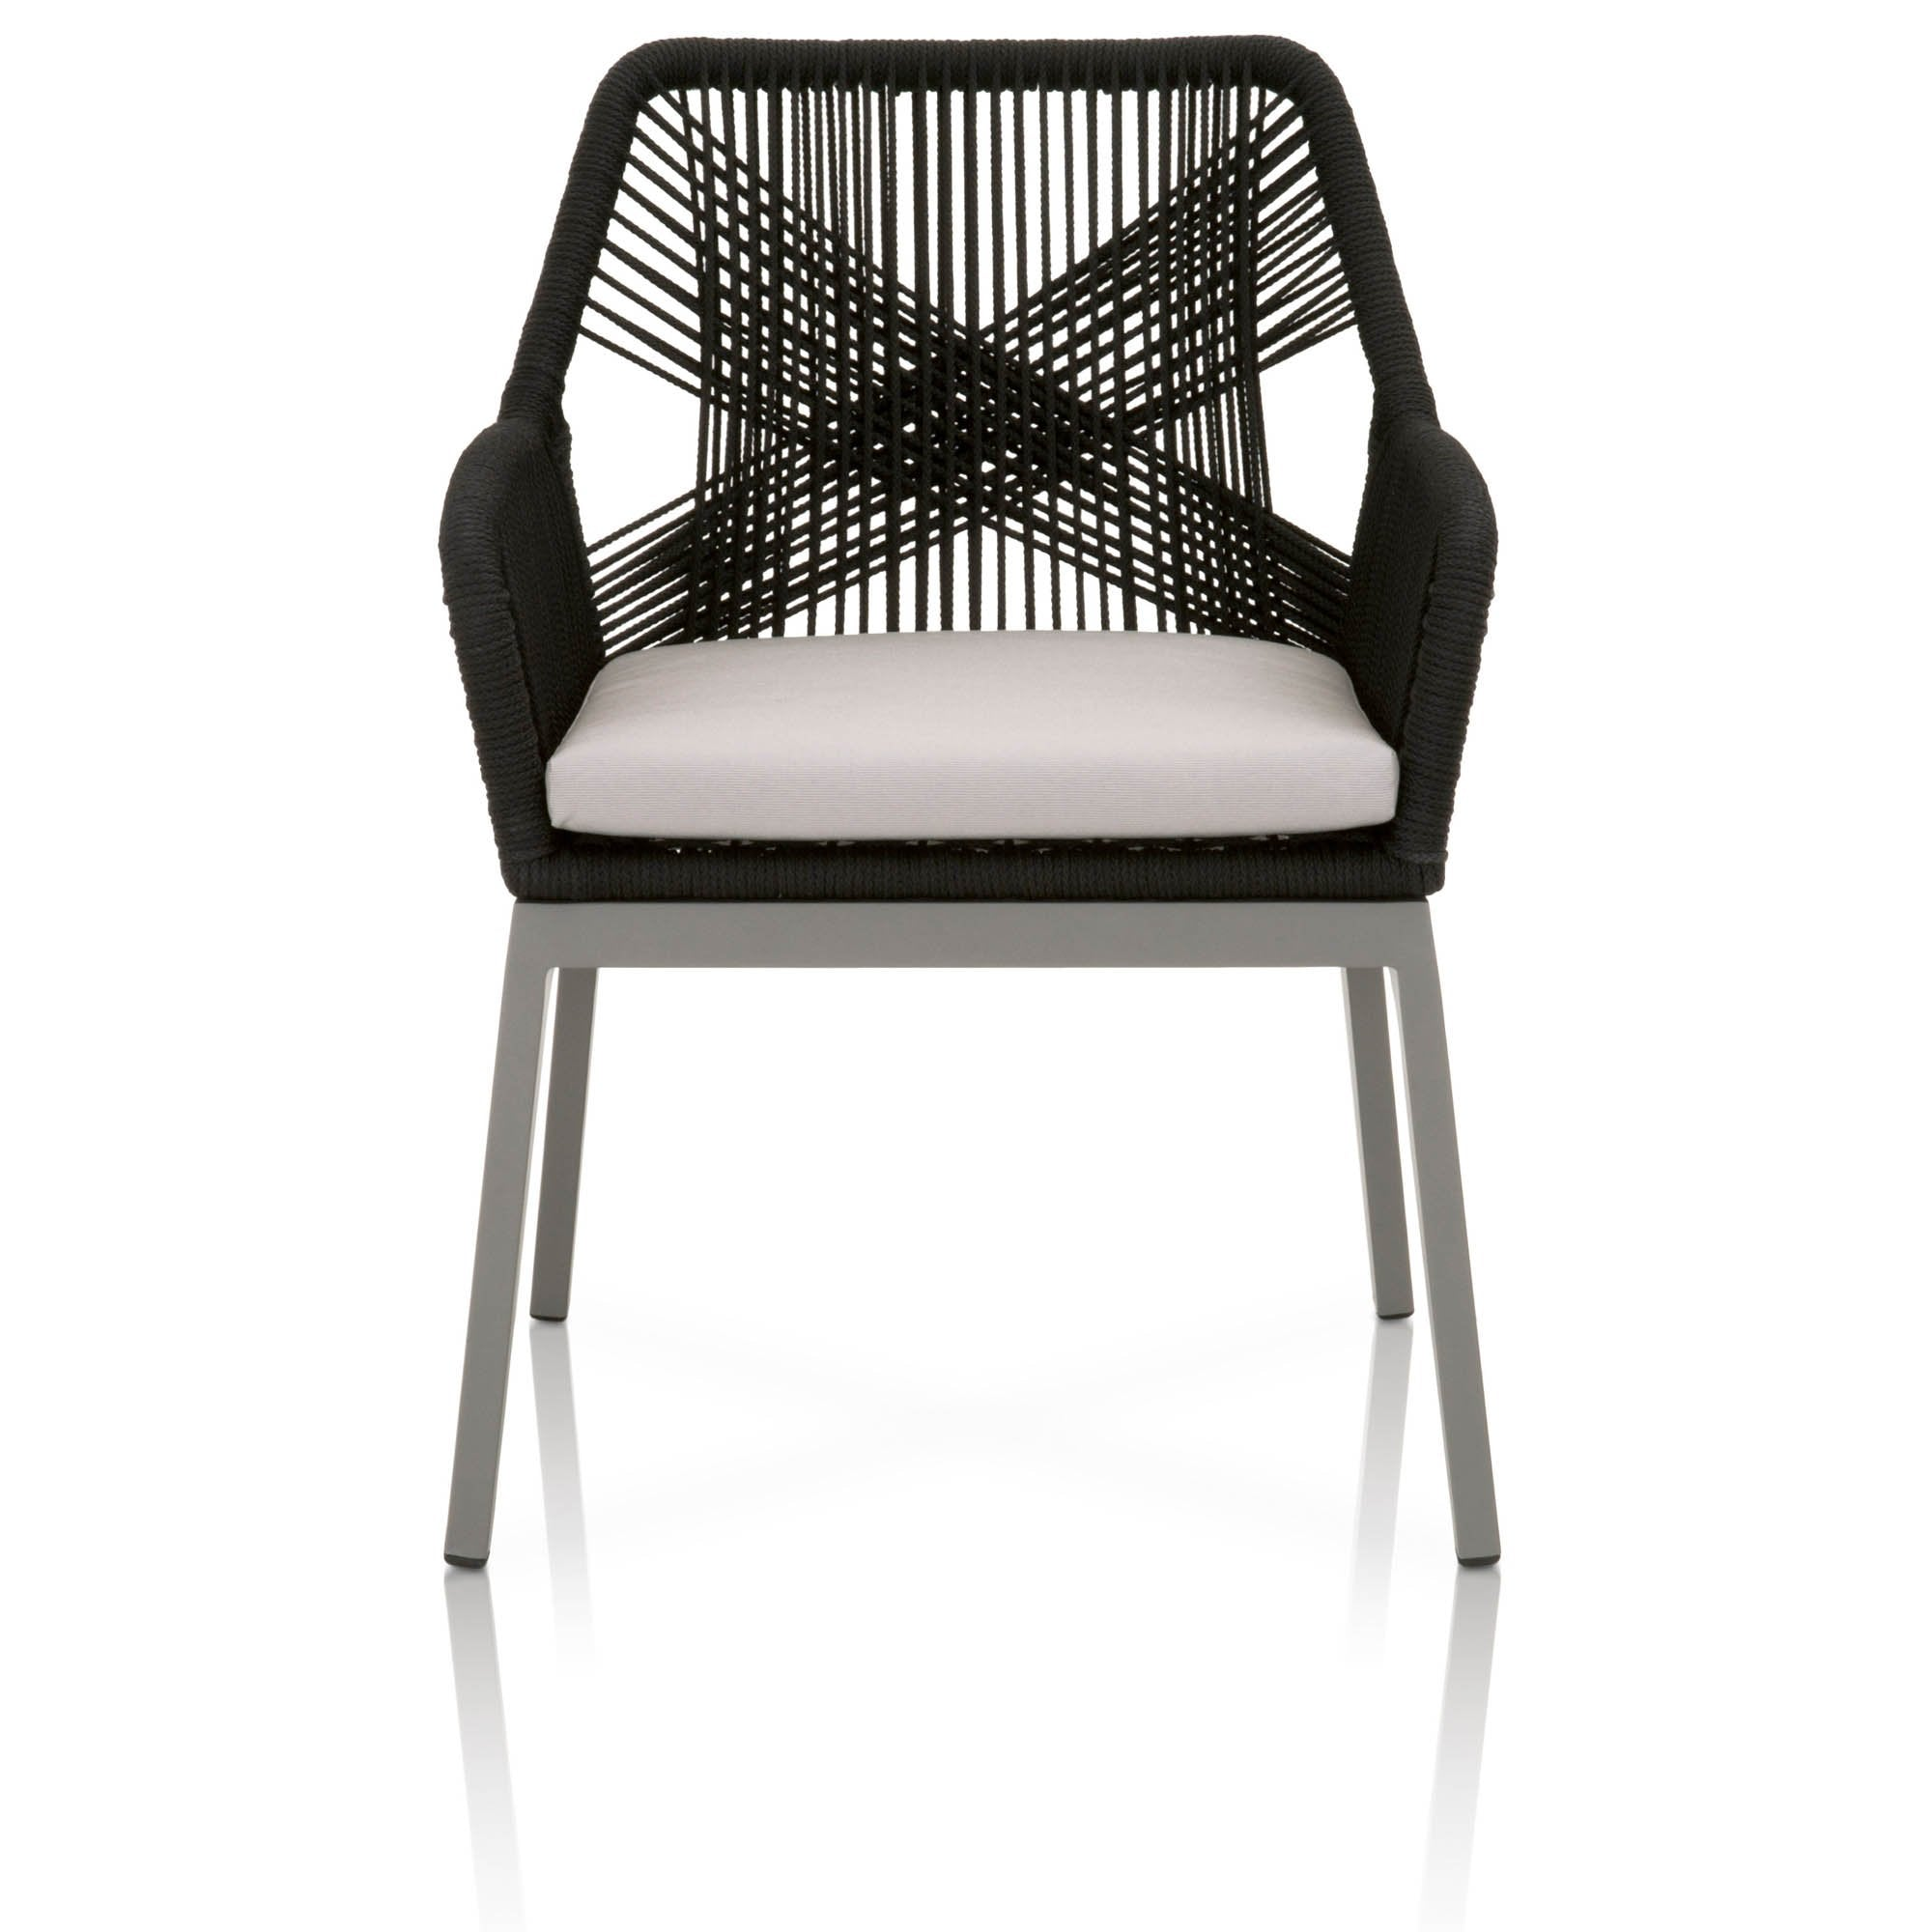 Loom Outdoor Arm Chair (Set of 2) in Black